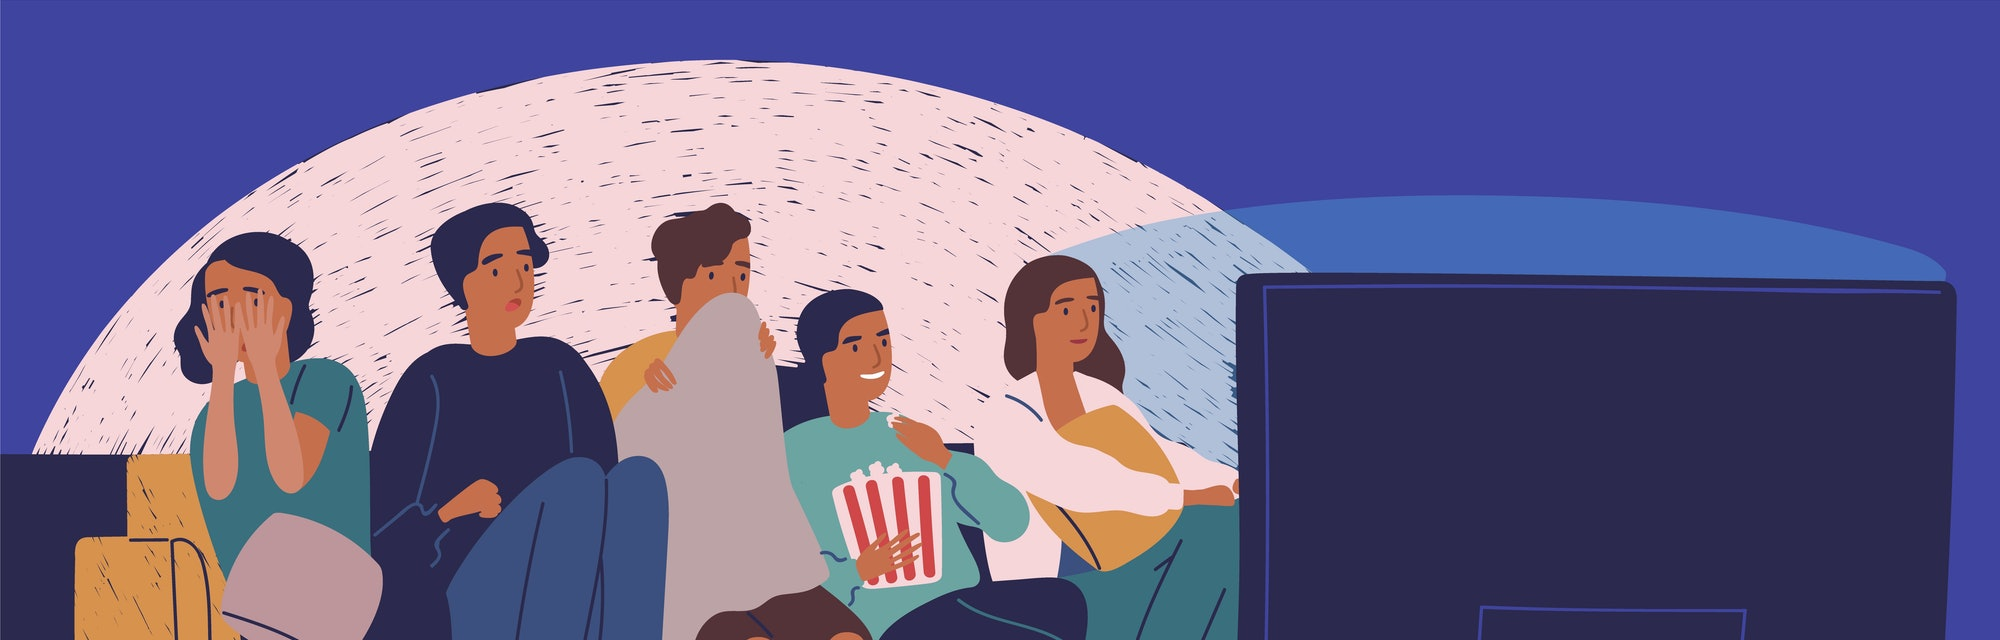 Group of friends sitting on sofa or couch in darkness and watching scary movie. Young girls and boys with scared faces look at TV screen. Colorful vector illustration.